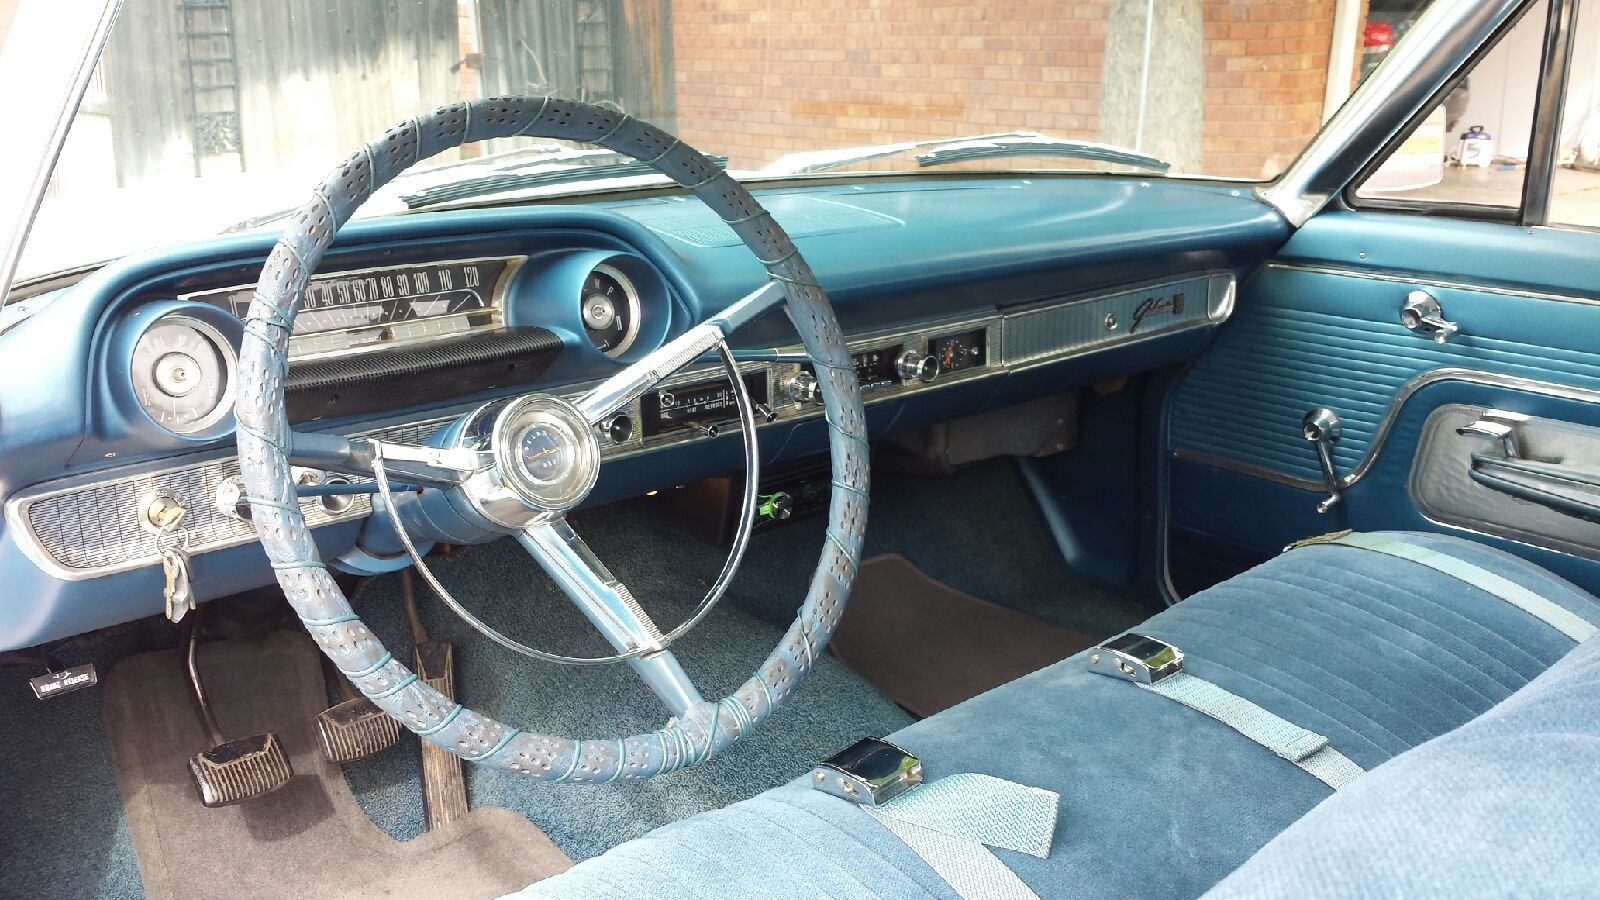 1963 ford galaxie 289 - 1963 1 2 Ford Galaxie 500 Fastback For Sale 75 000 Original Miles Rebuilt 289 Engine 2 Owner 3 Speed Manual Column Shift Seats Reupholstered New Paint All